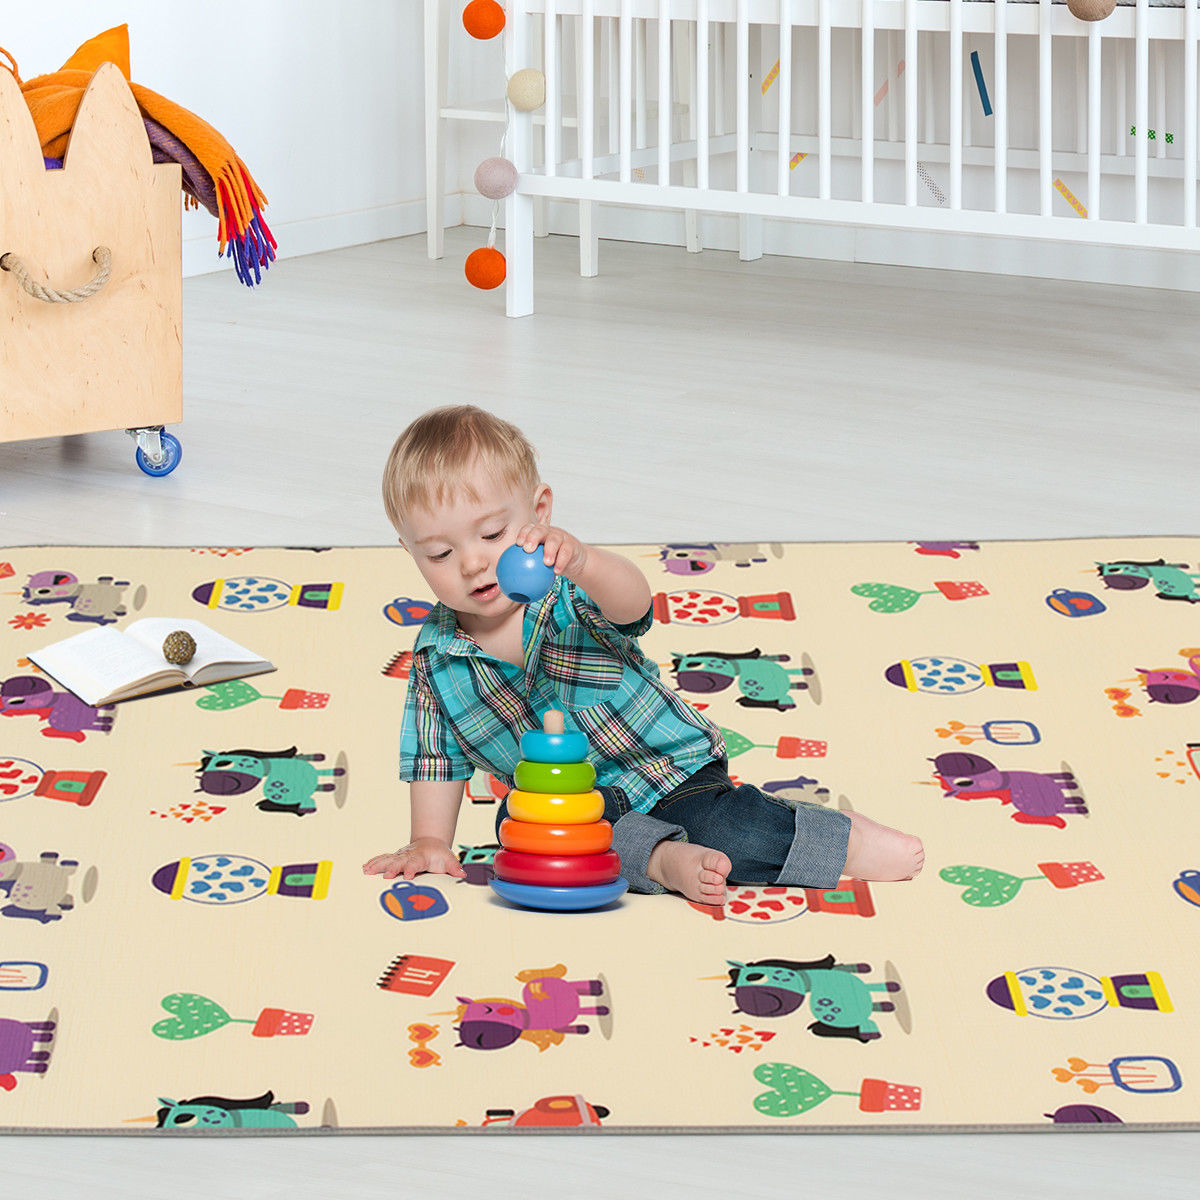 Gymax 67''x59'' Folding Baby Play Mat Reversible XPE Floor Playmat Toddlers Waterproof